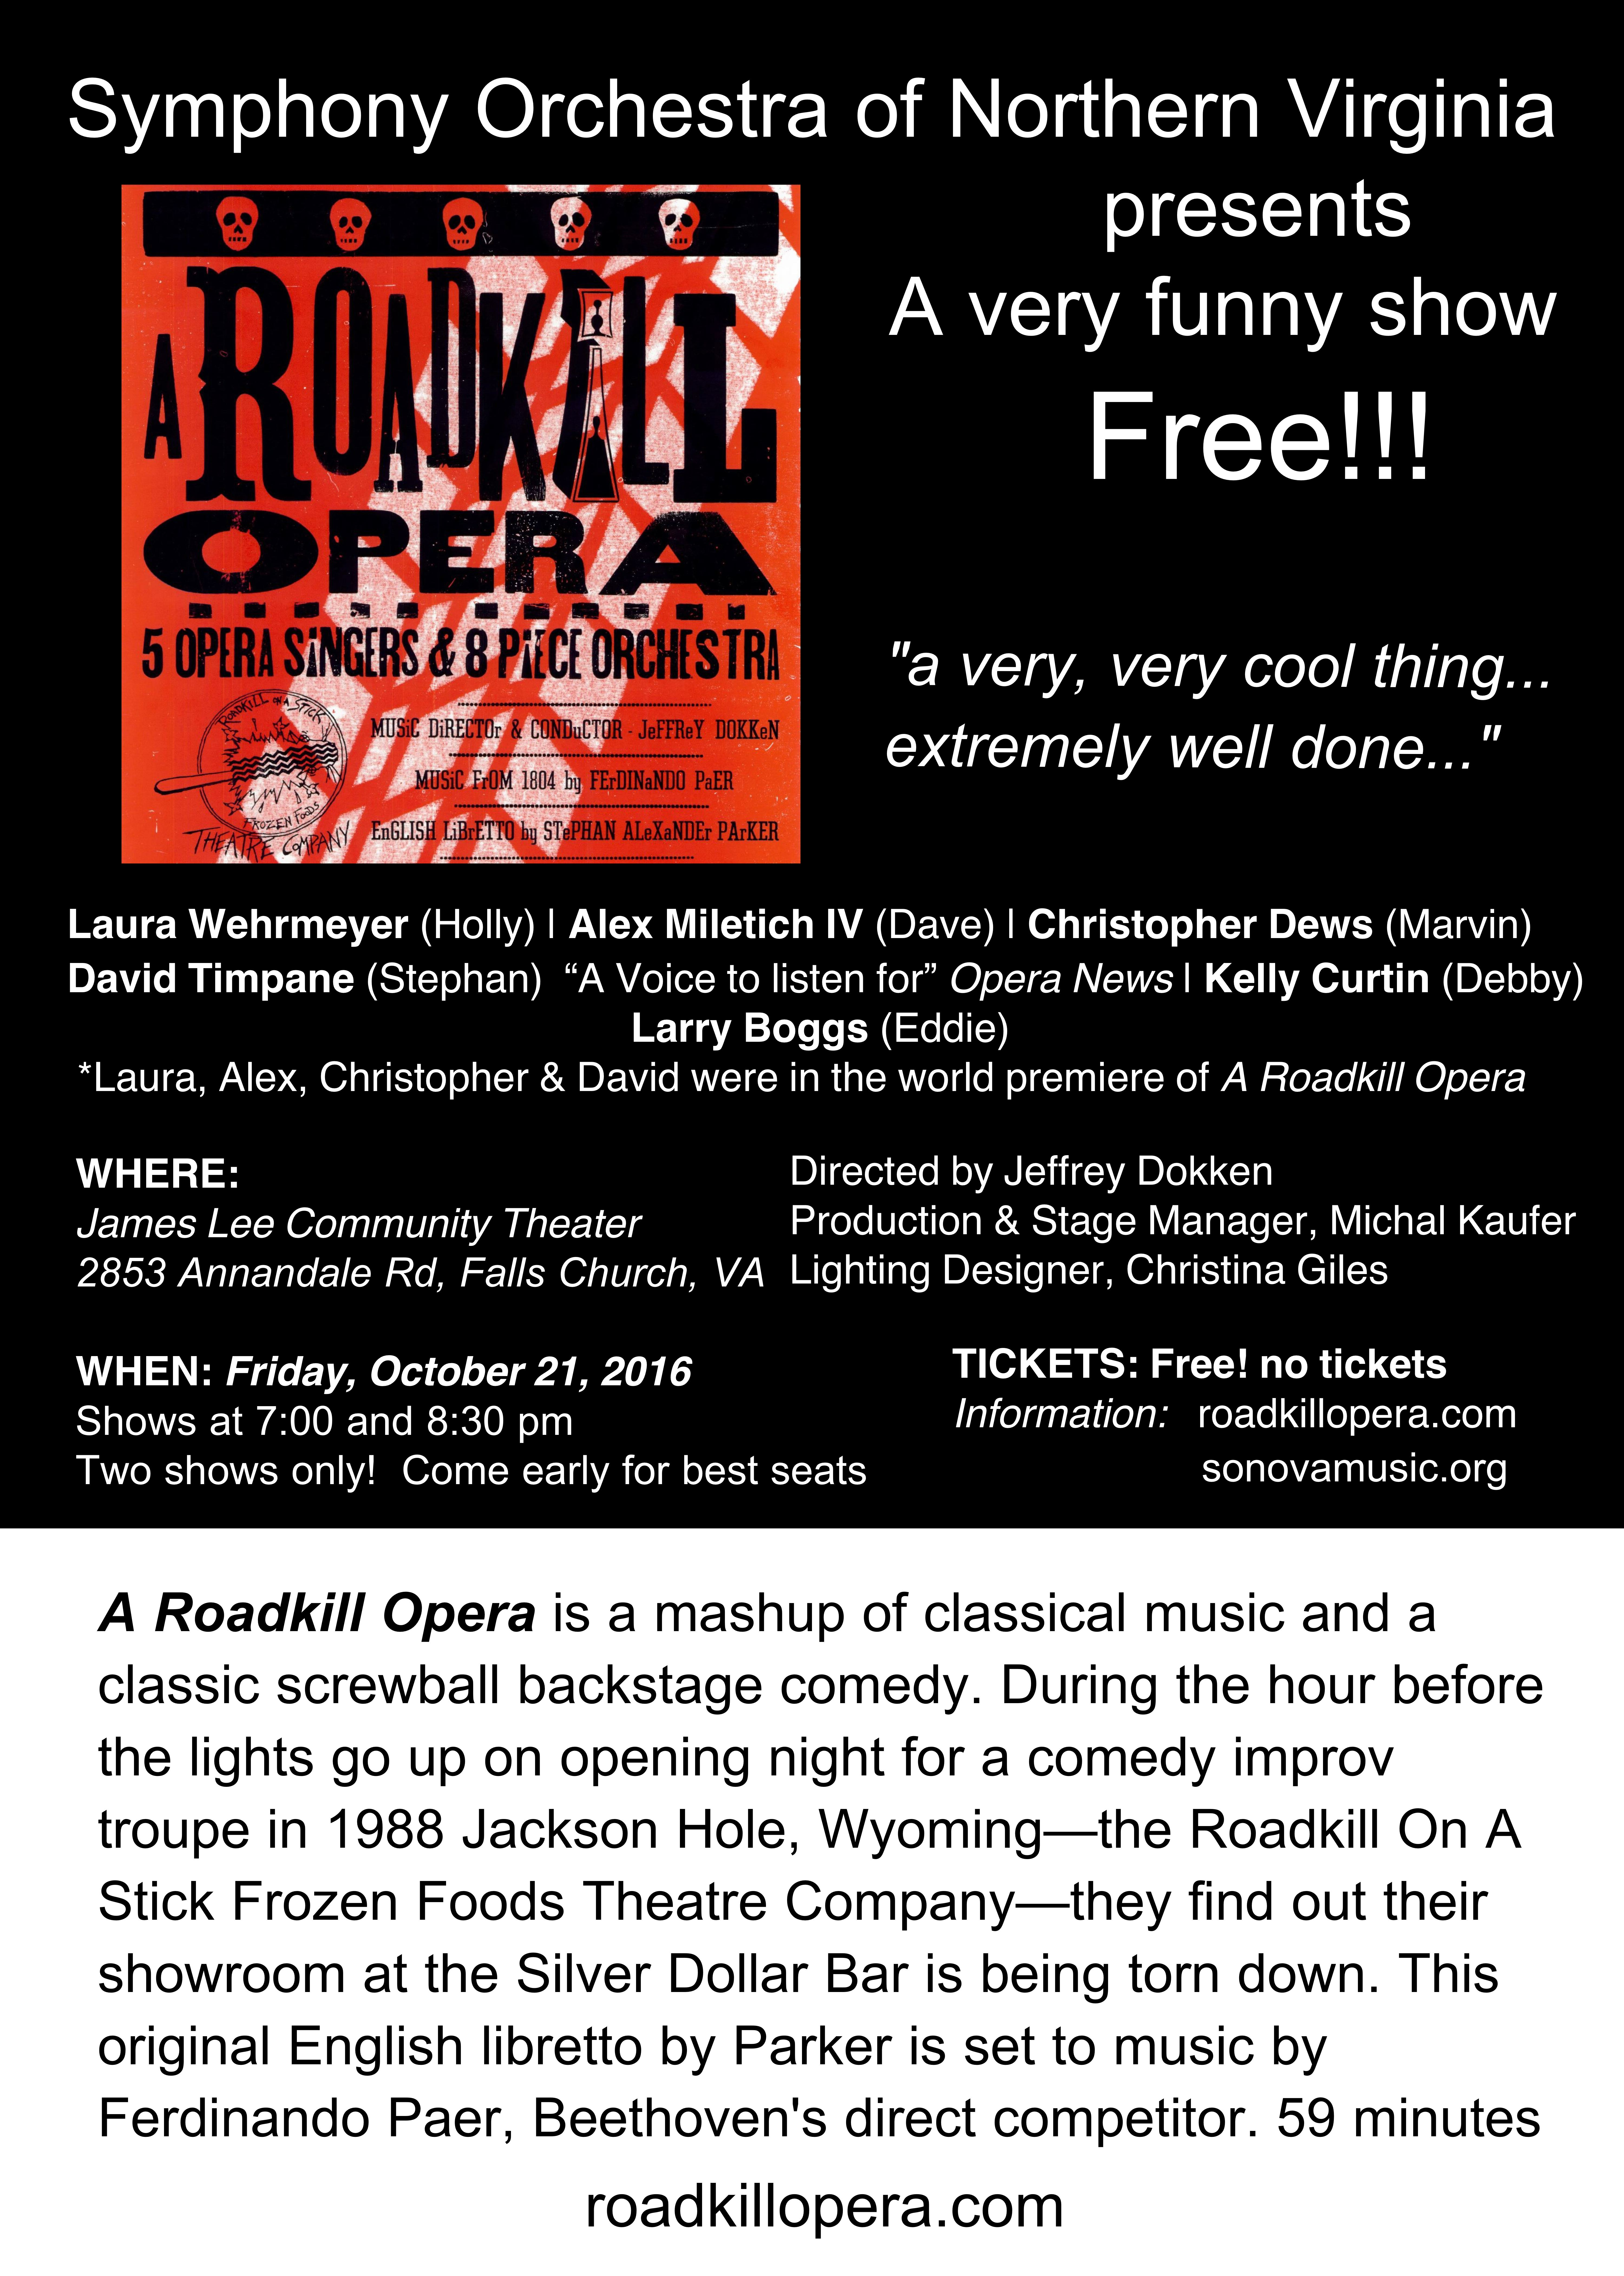 Postcard with details on the October 21, 2016 performances of A Roadkill Opera by the Symphony Orchestra of Northern Virginia